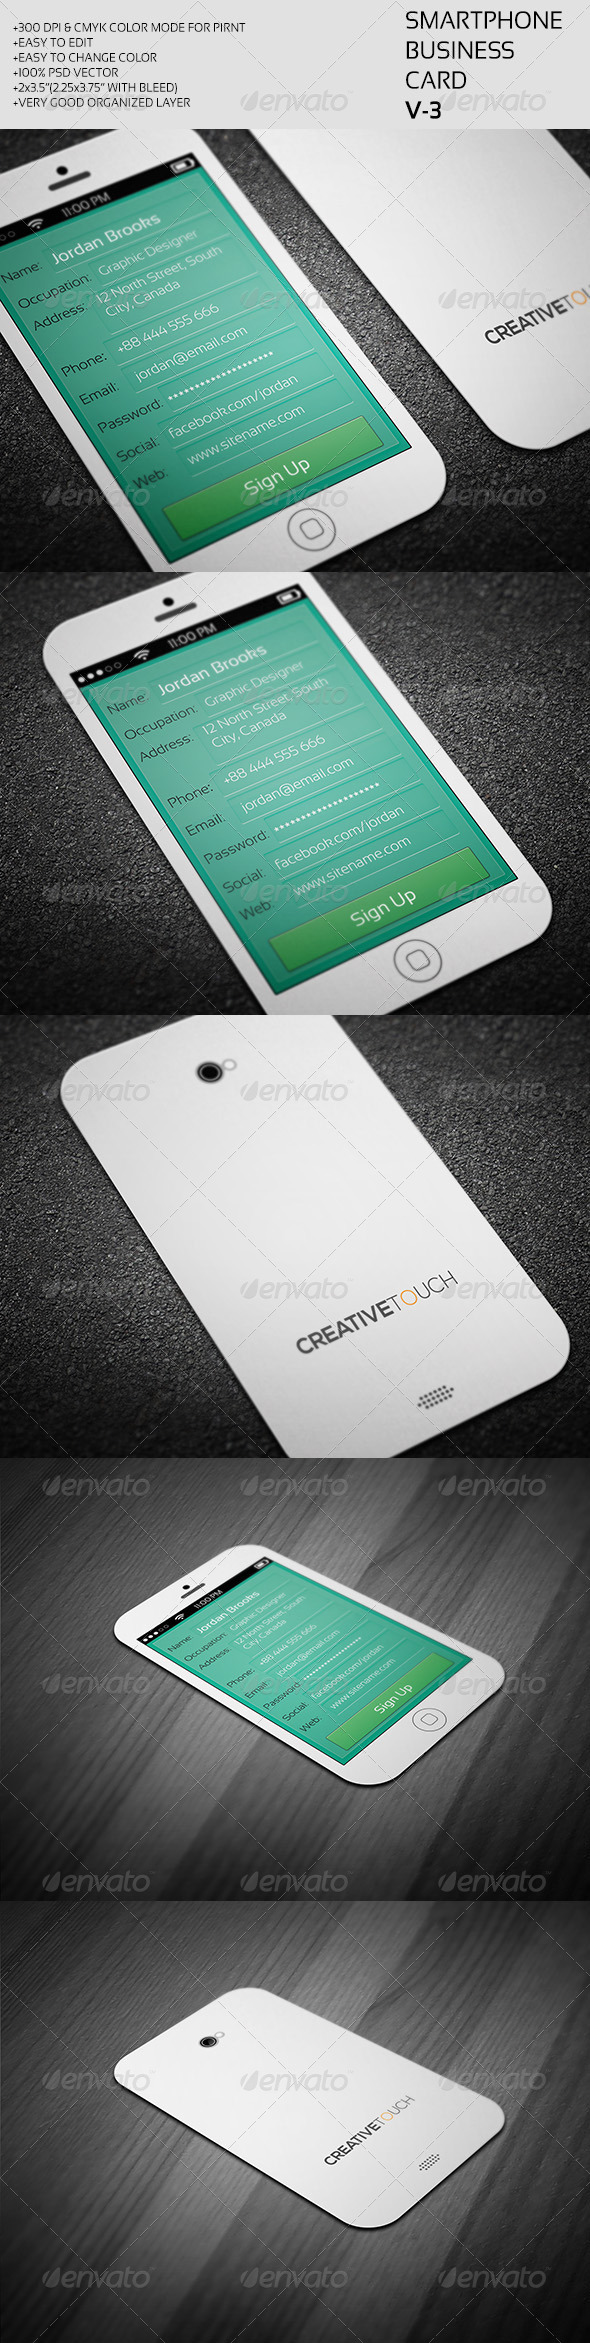 GraphicRiver Smartphone Business Card V-3 7712942